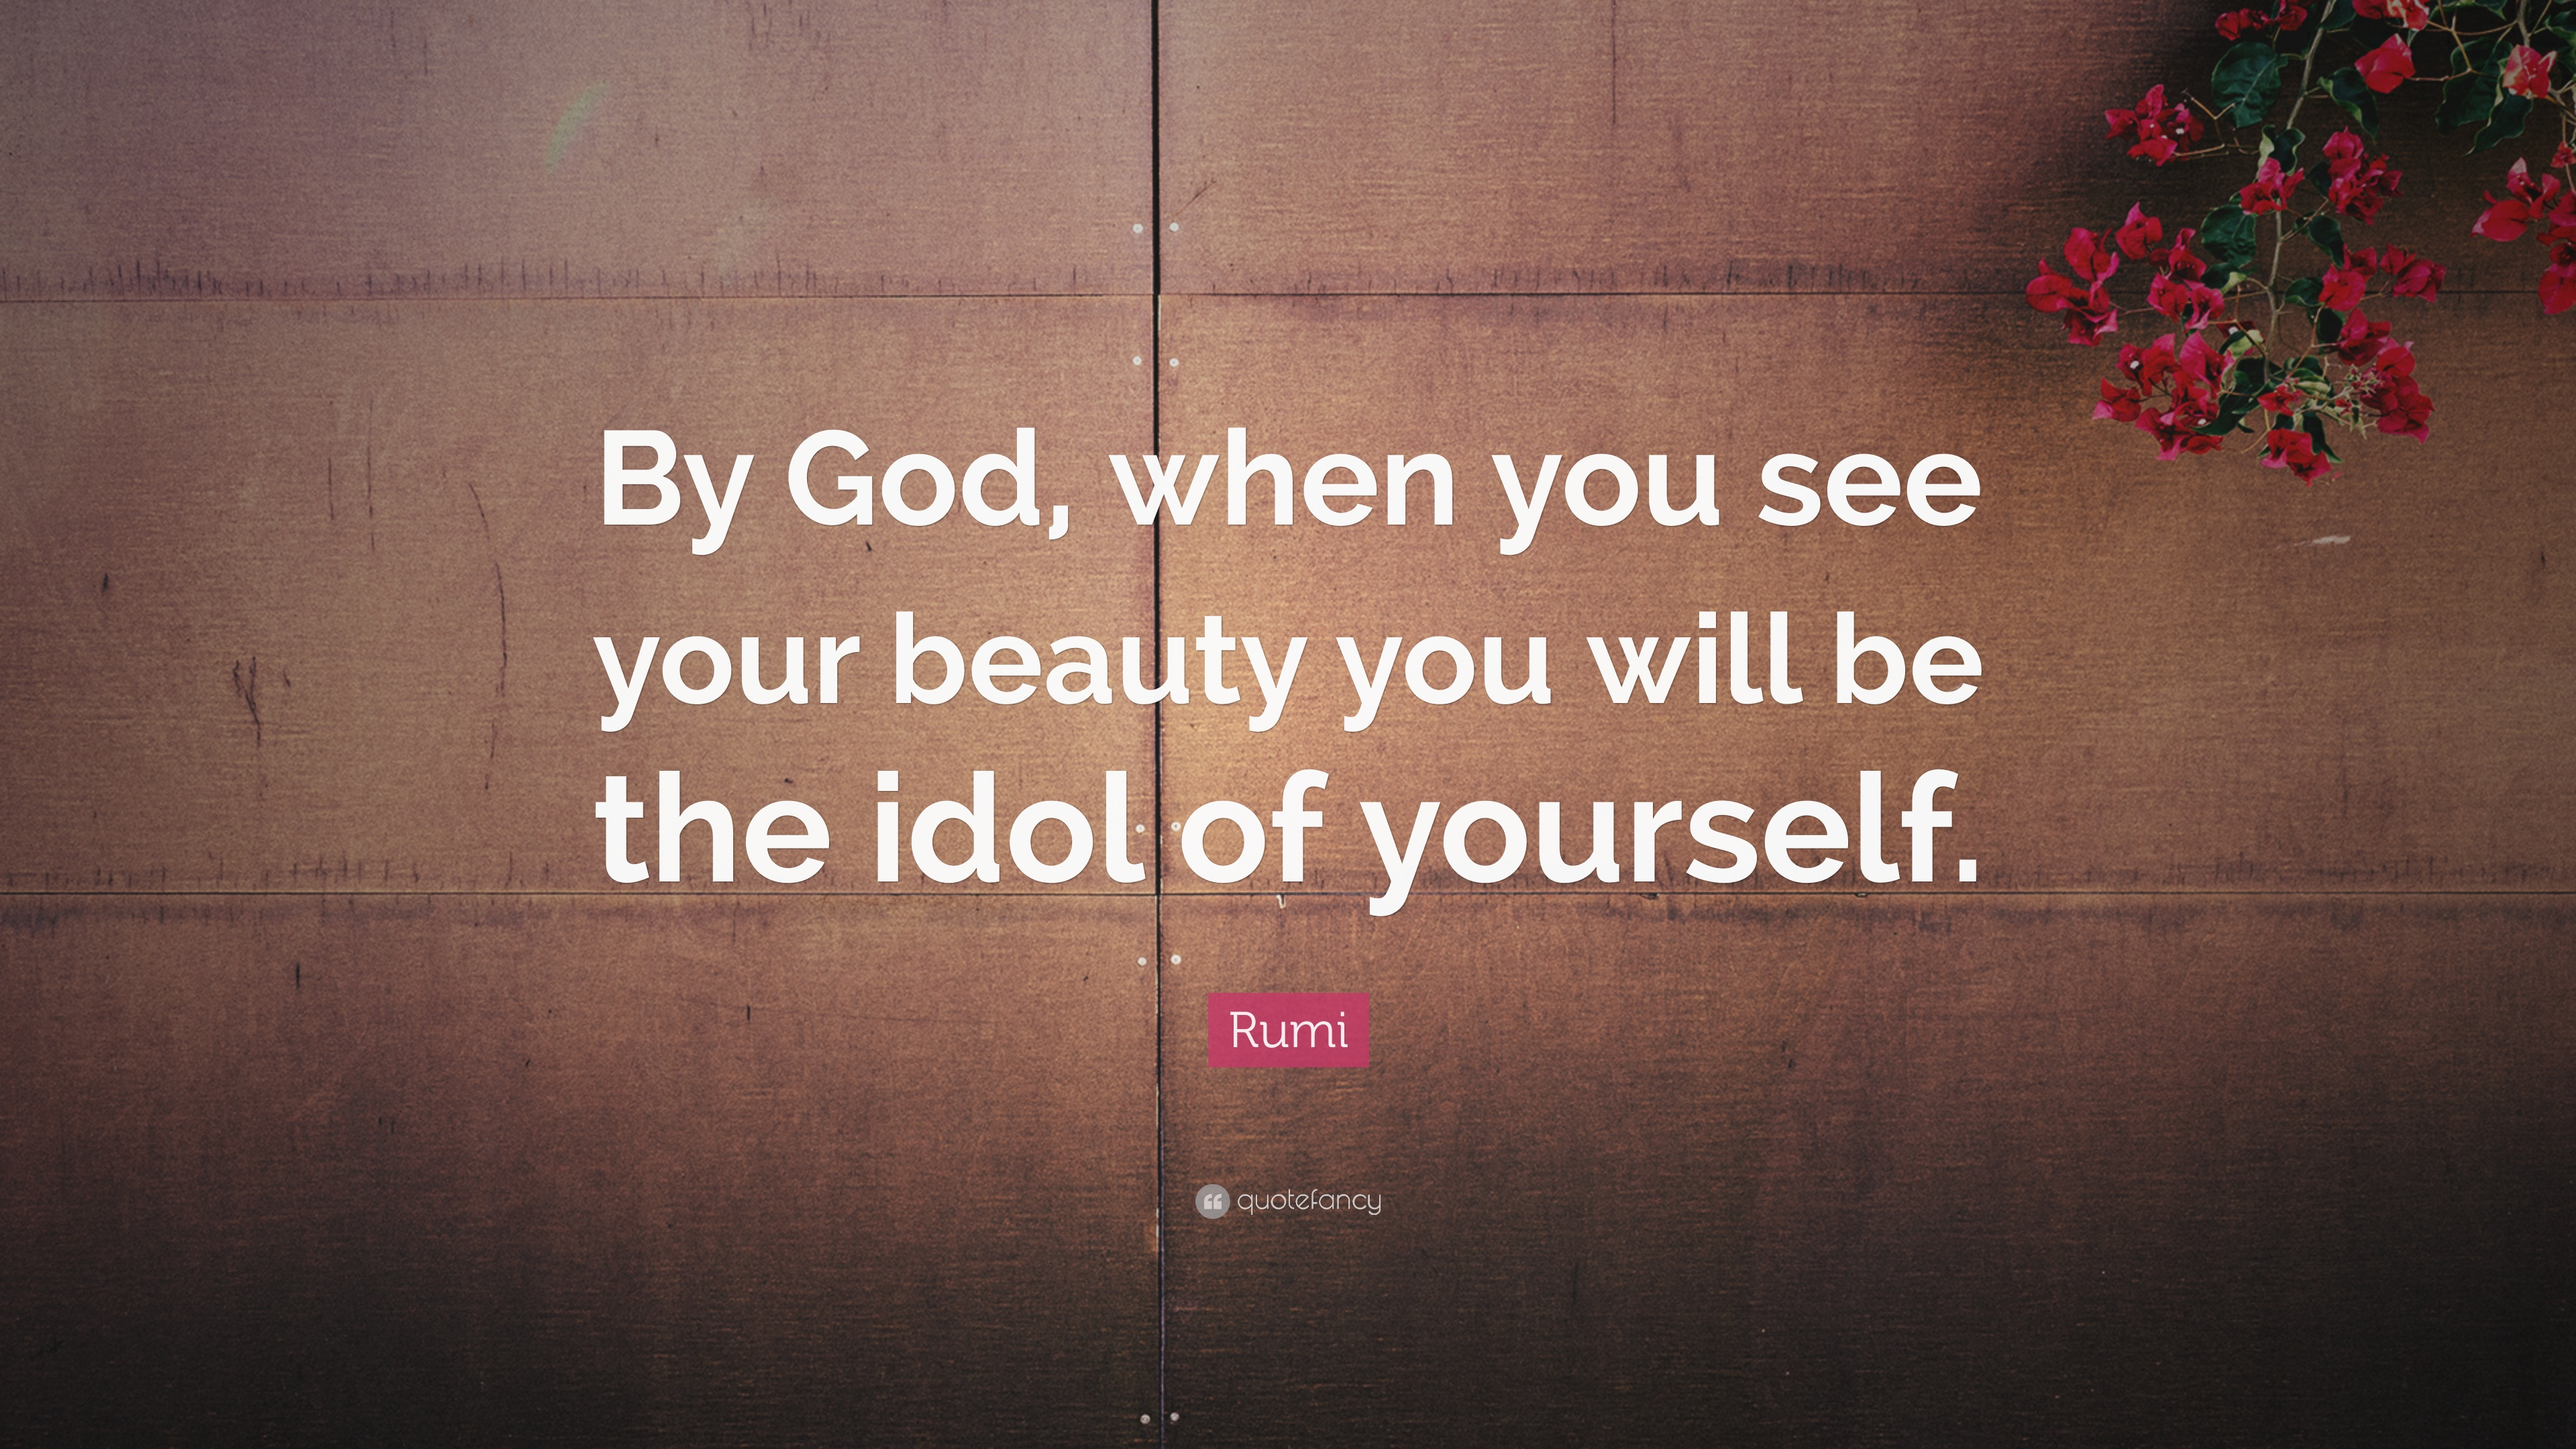 Rumi Quote By God When You See Your Beauty You Will Be The Idol